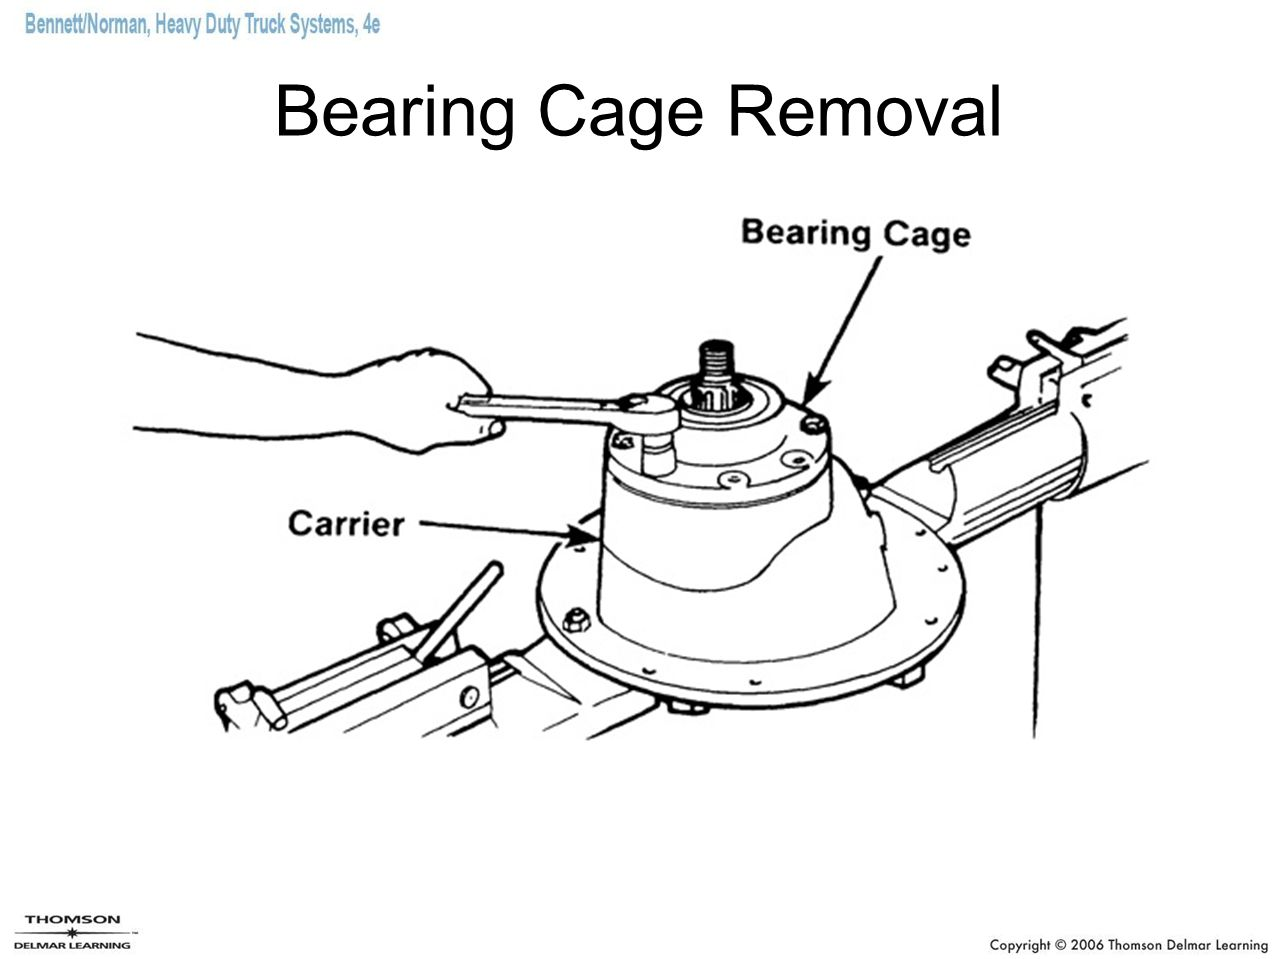 Bearing Cage Removal